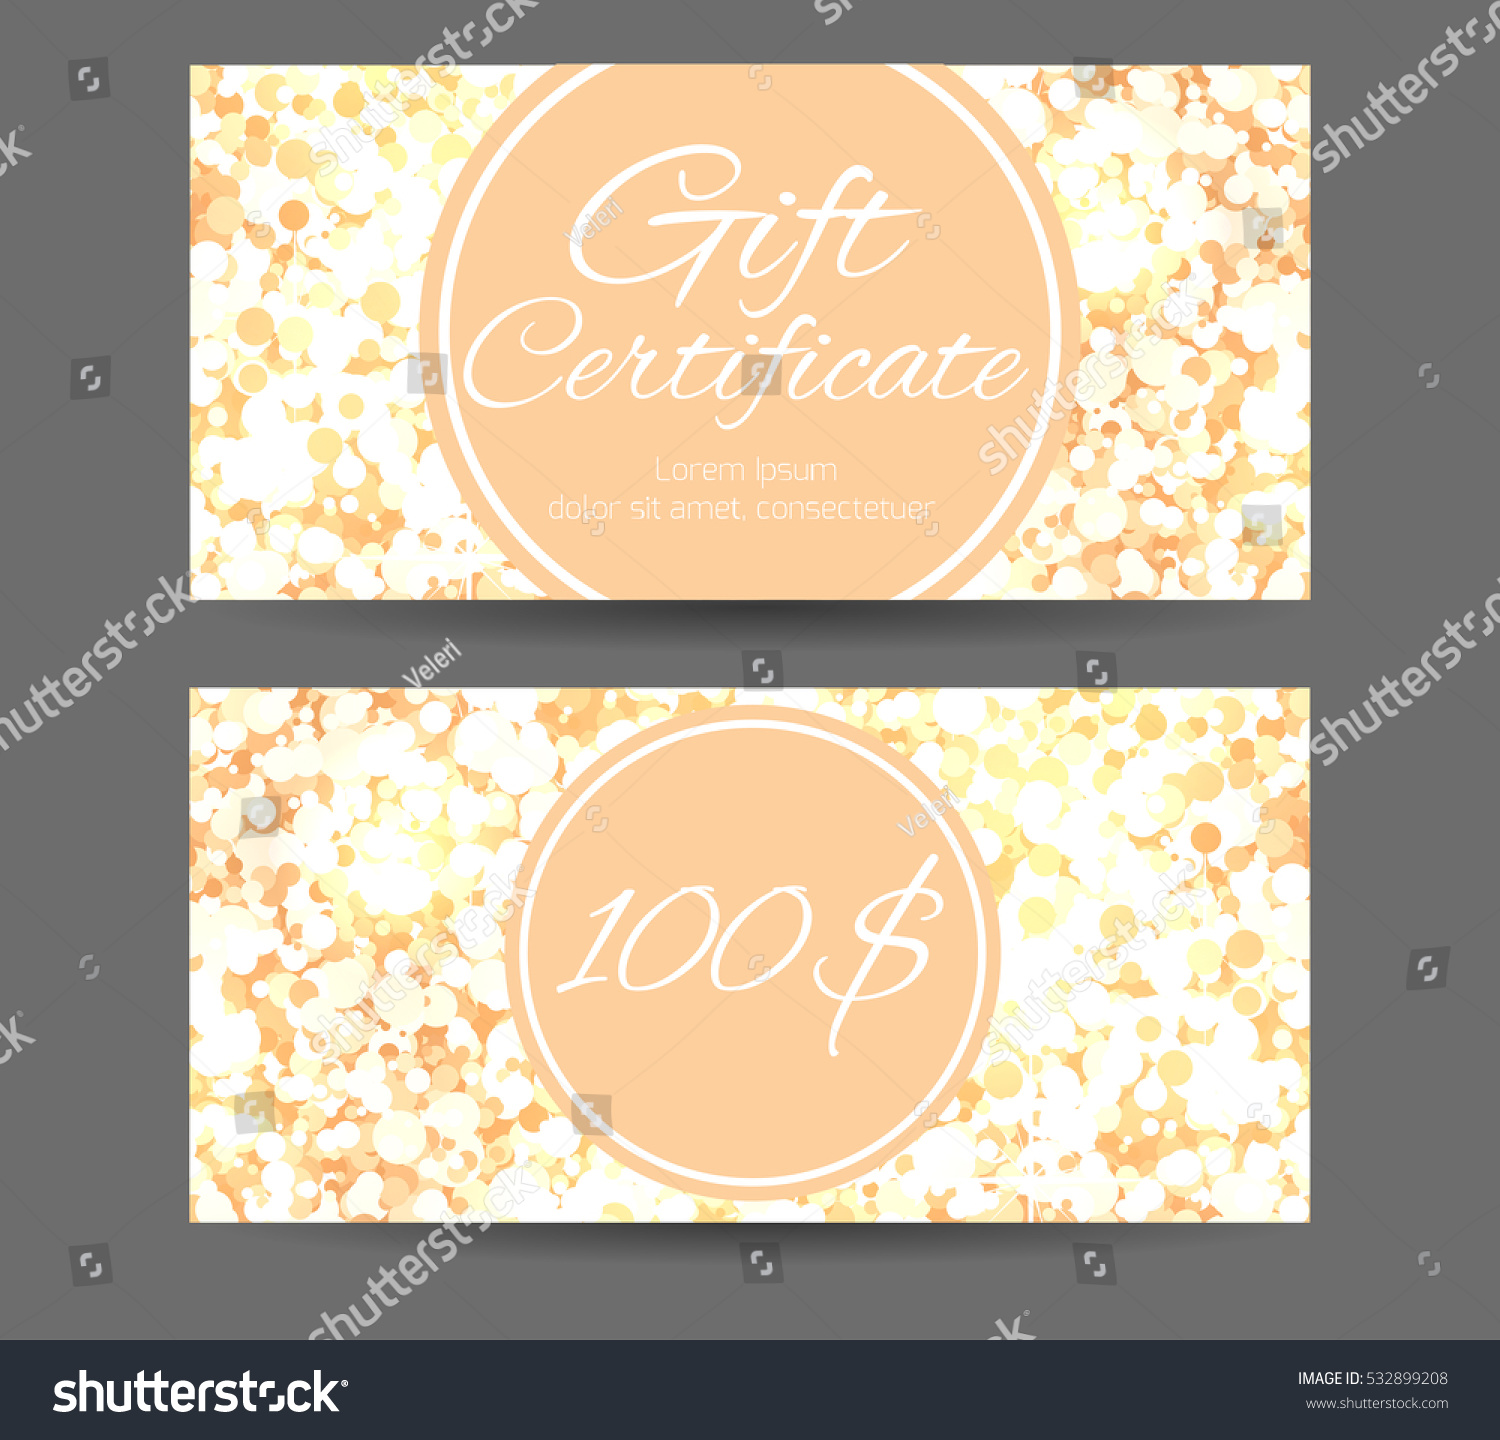 Yoga gift certificate template free pasoevolist yoga gift certificate template free yelopaper Image collections